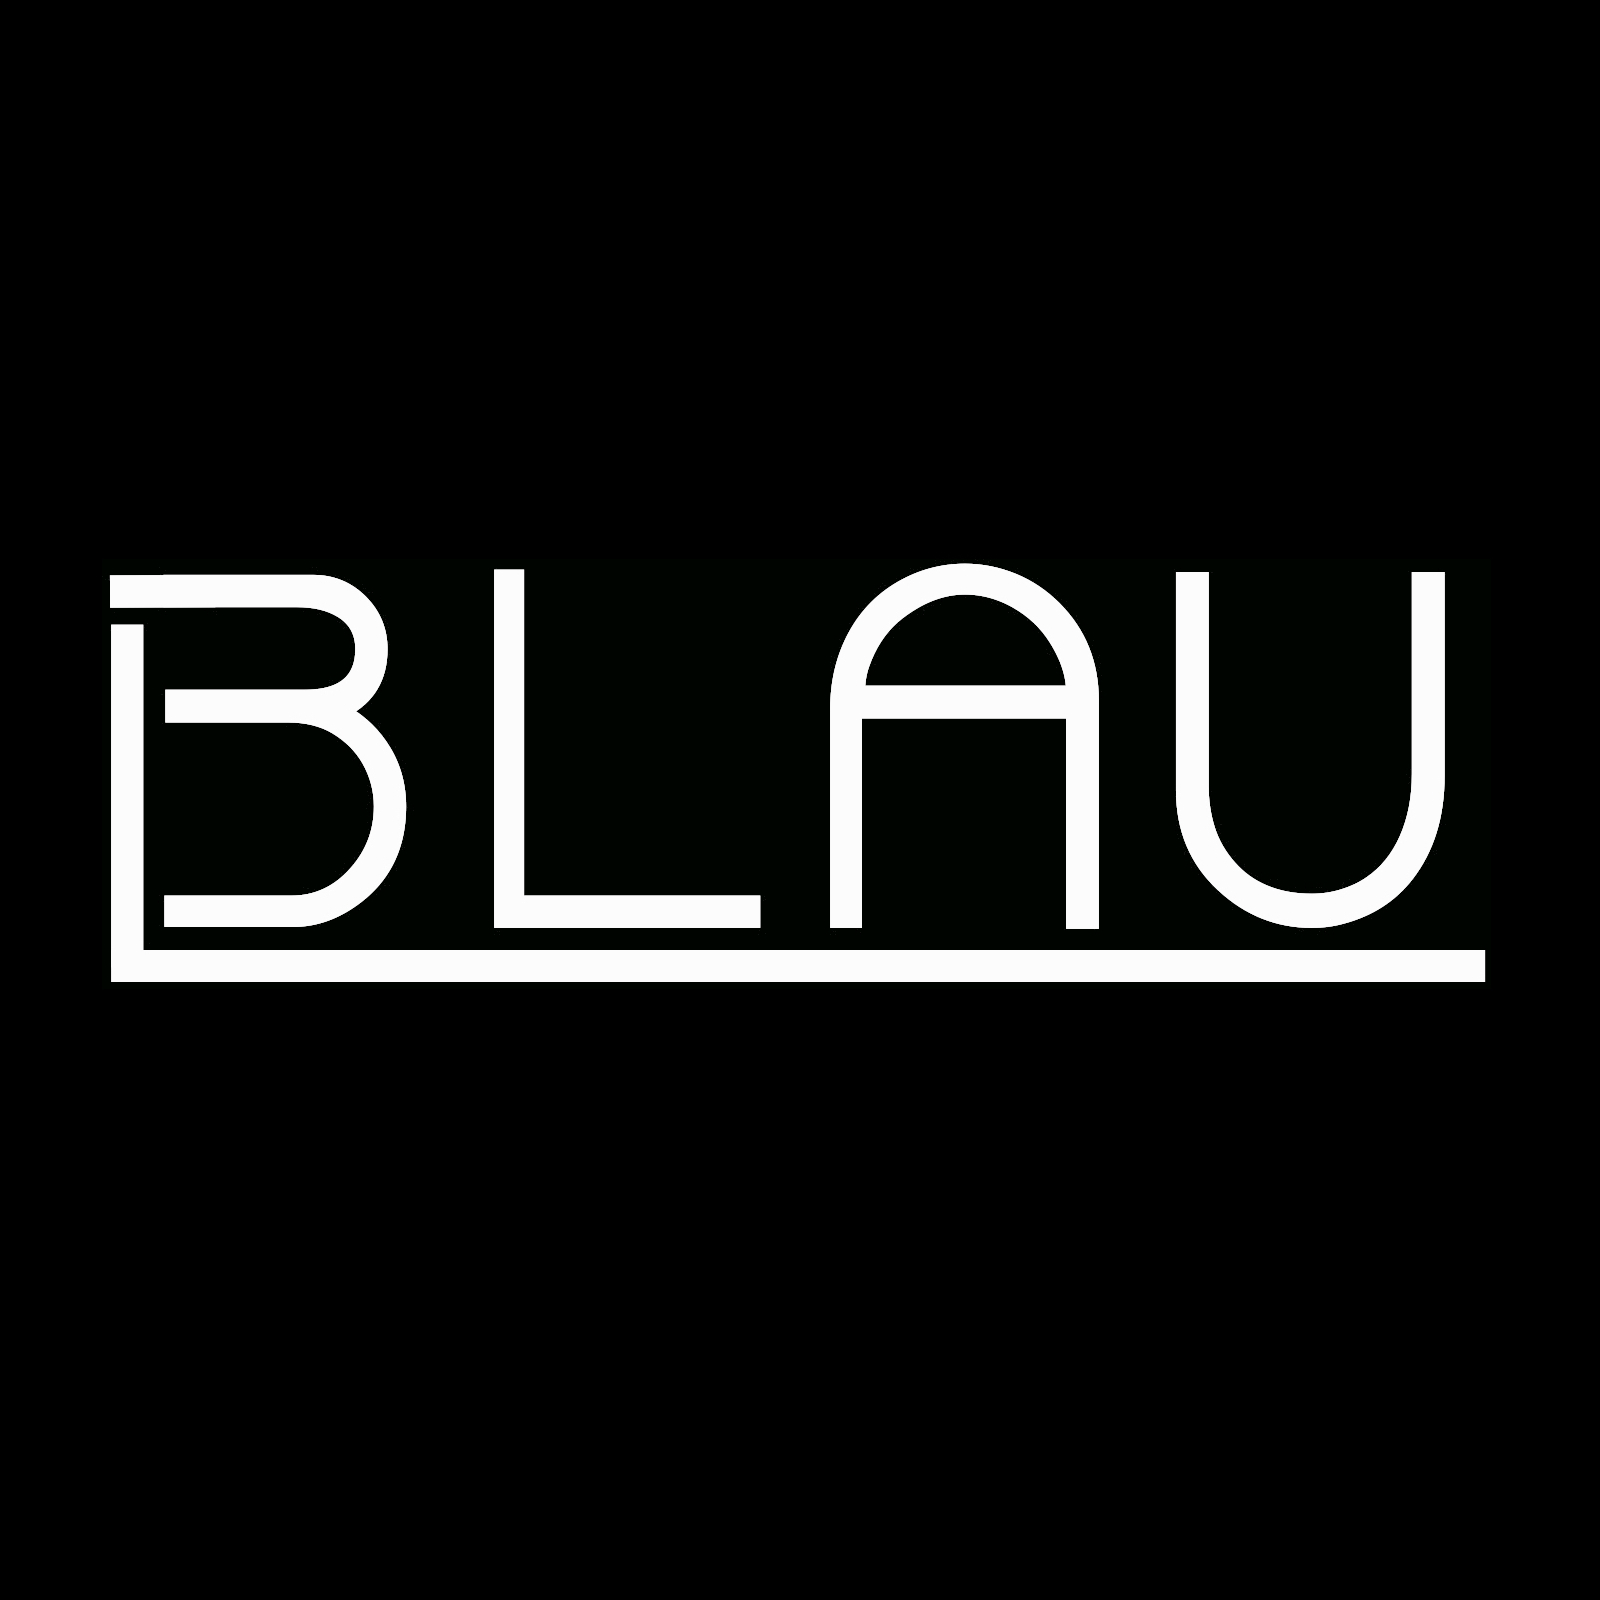 Beat It Barbra (Duck Sauce v MJ's Cuit Beat Mix) – By 3LAU